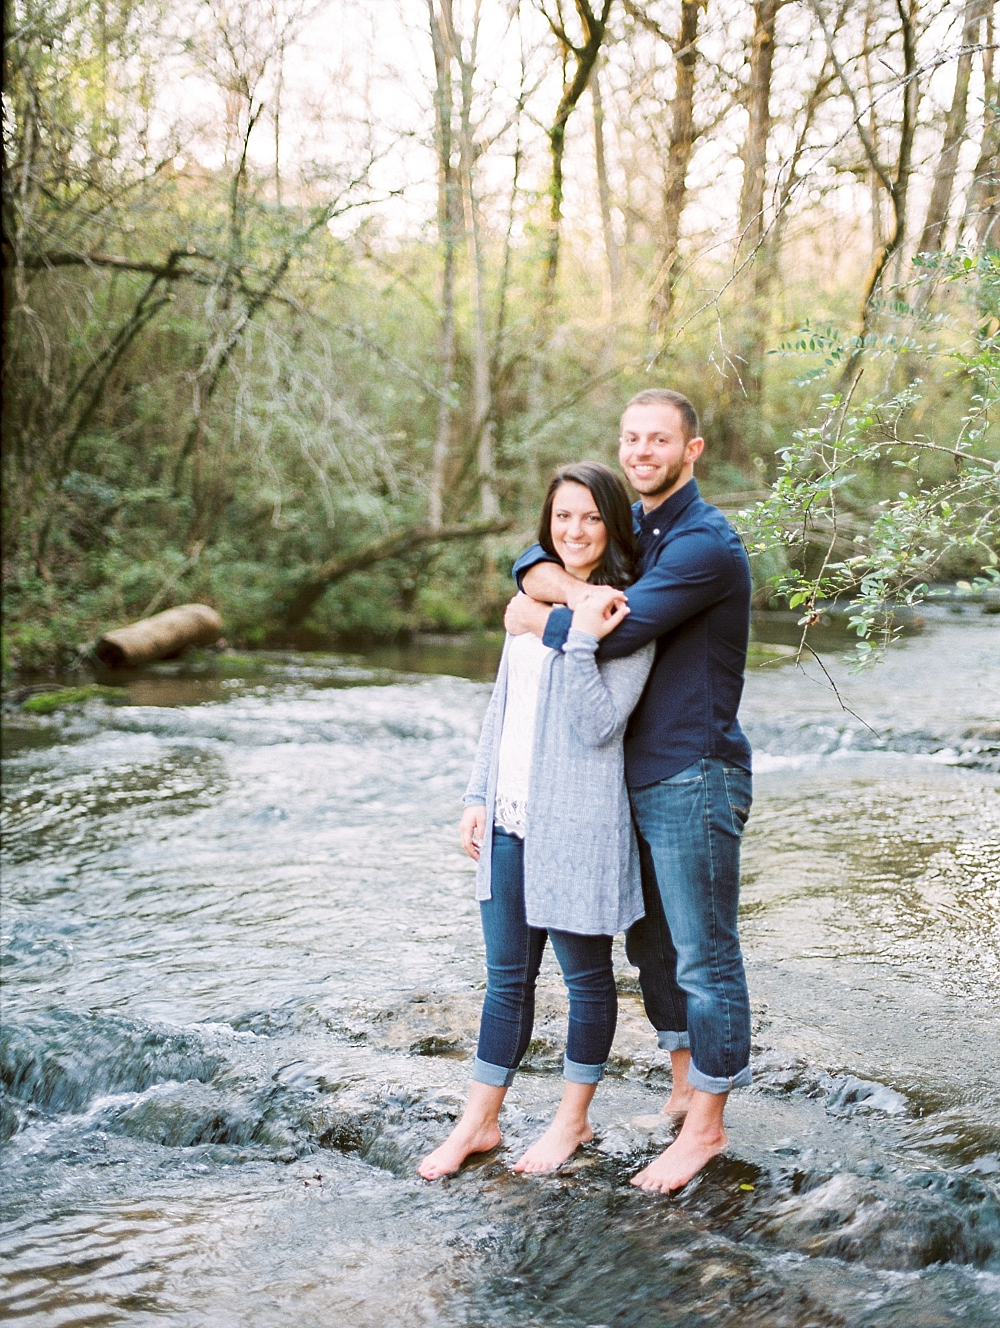 JuicebeatsPhotography_KnoxvilleEngagement_Kristina&Ben_0039.jpg